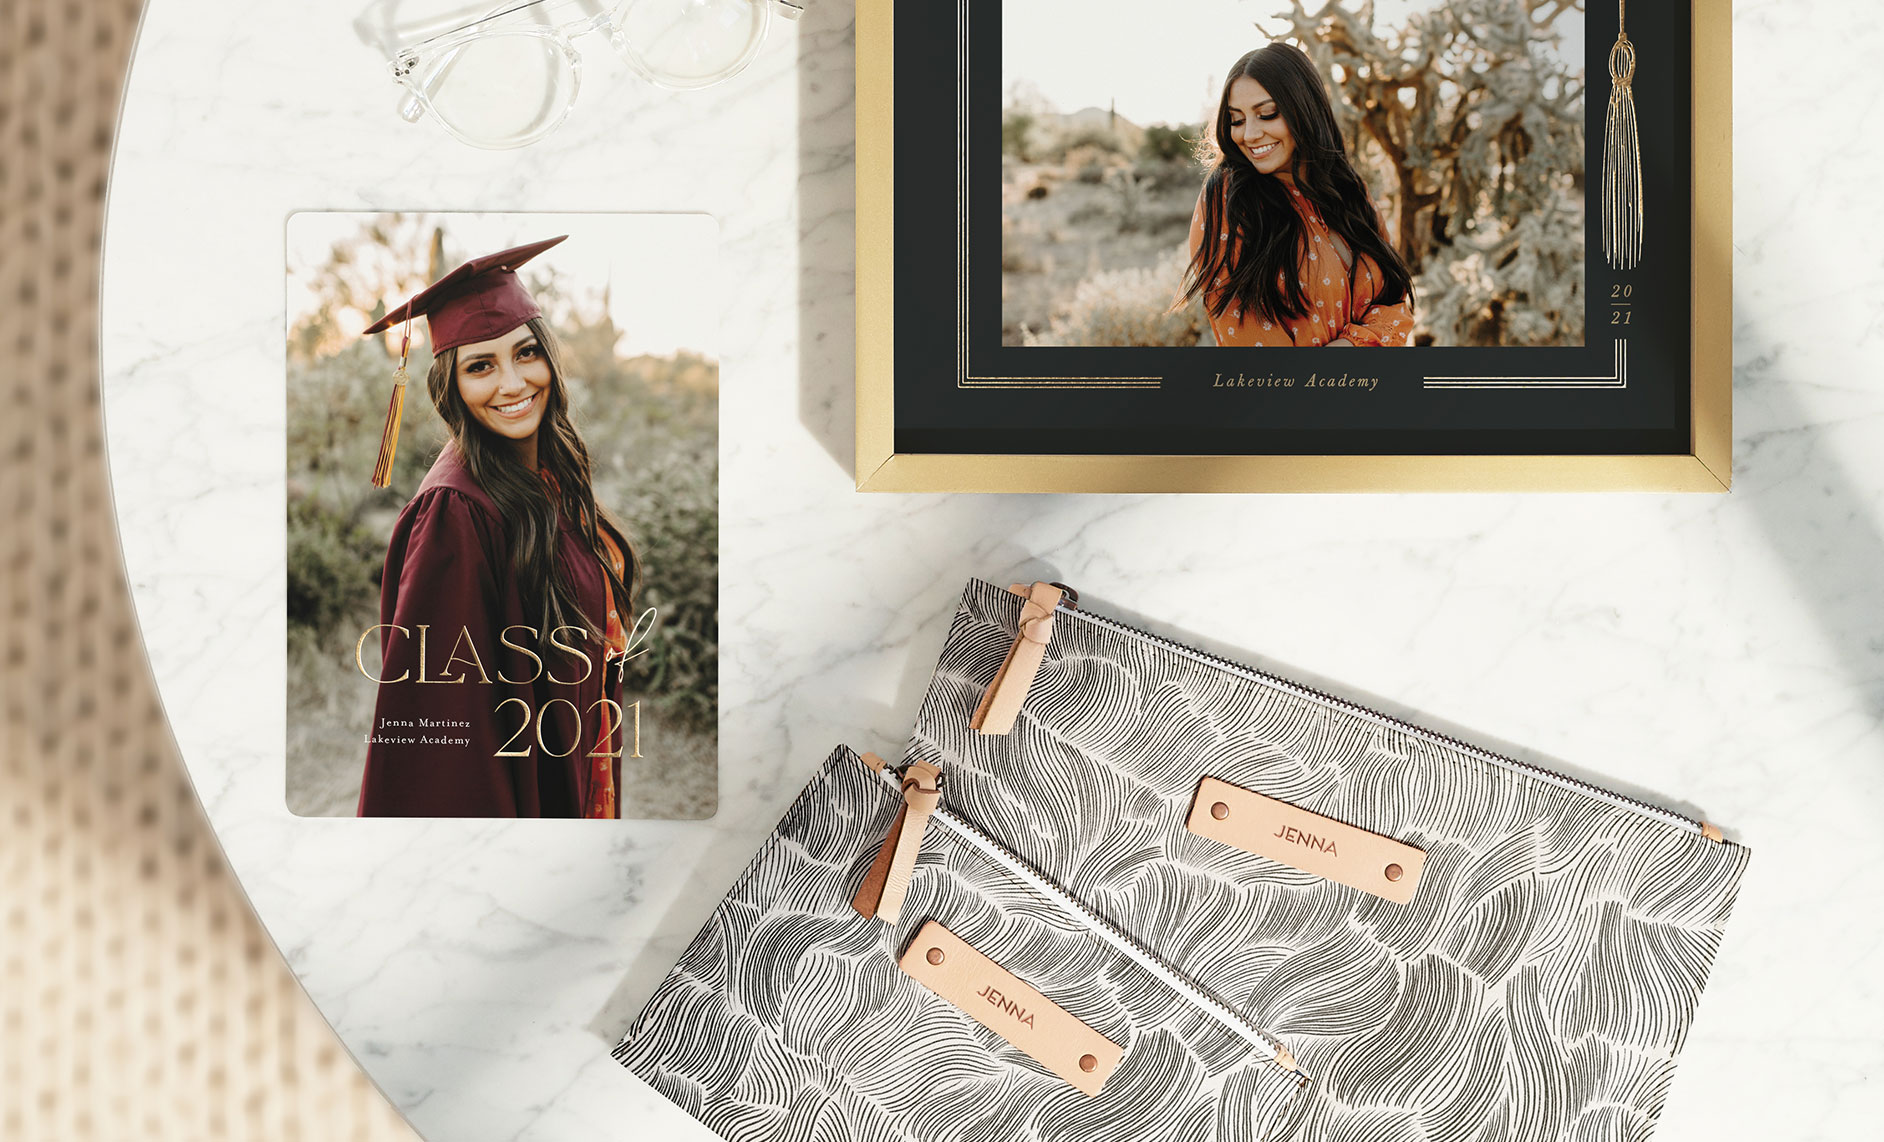 Graduation announcements, thank you cards, photo art gifts